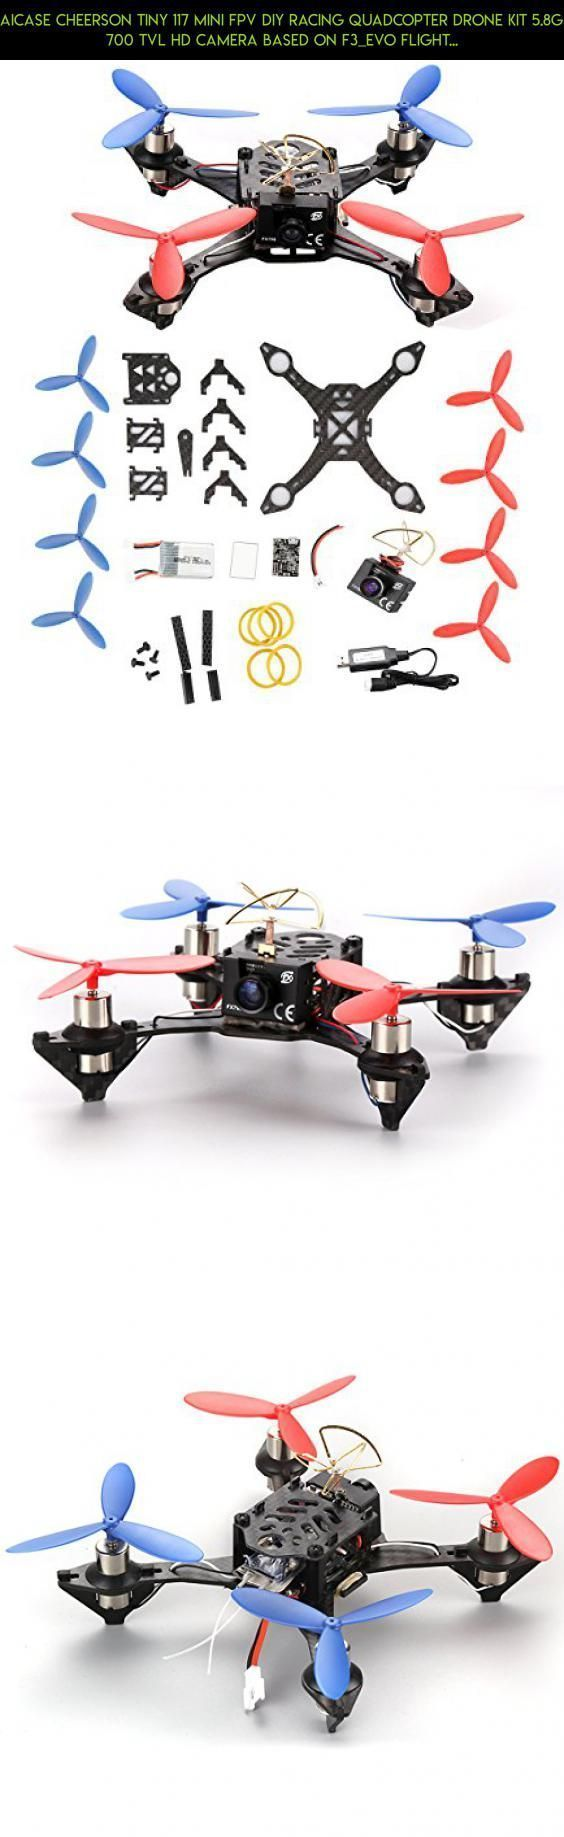 AICase Cheerson TINY 117 Mini FPV DIY Racing Quadcopter Drone Kit 5.8G 700 TVL HD Camera Based On F3_EVO Flight Controller #kit #racing #drone #tech #gadgets #products #fpv #parts #parts #plans #technology #camera #syma #shopping #f3